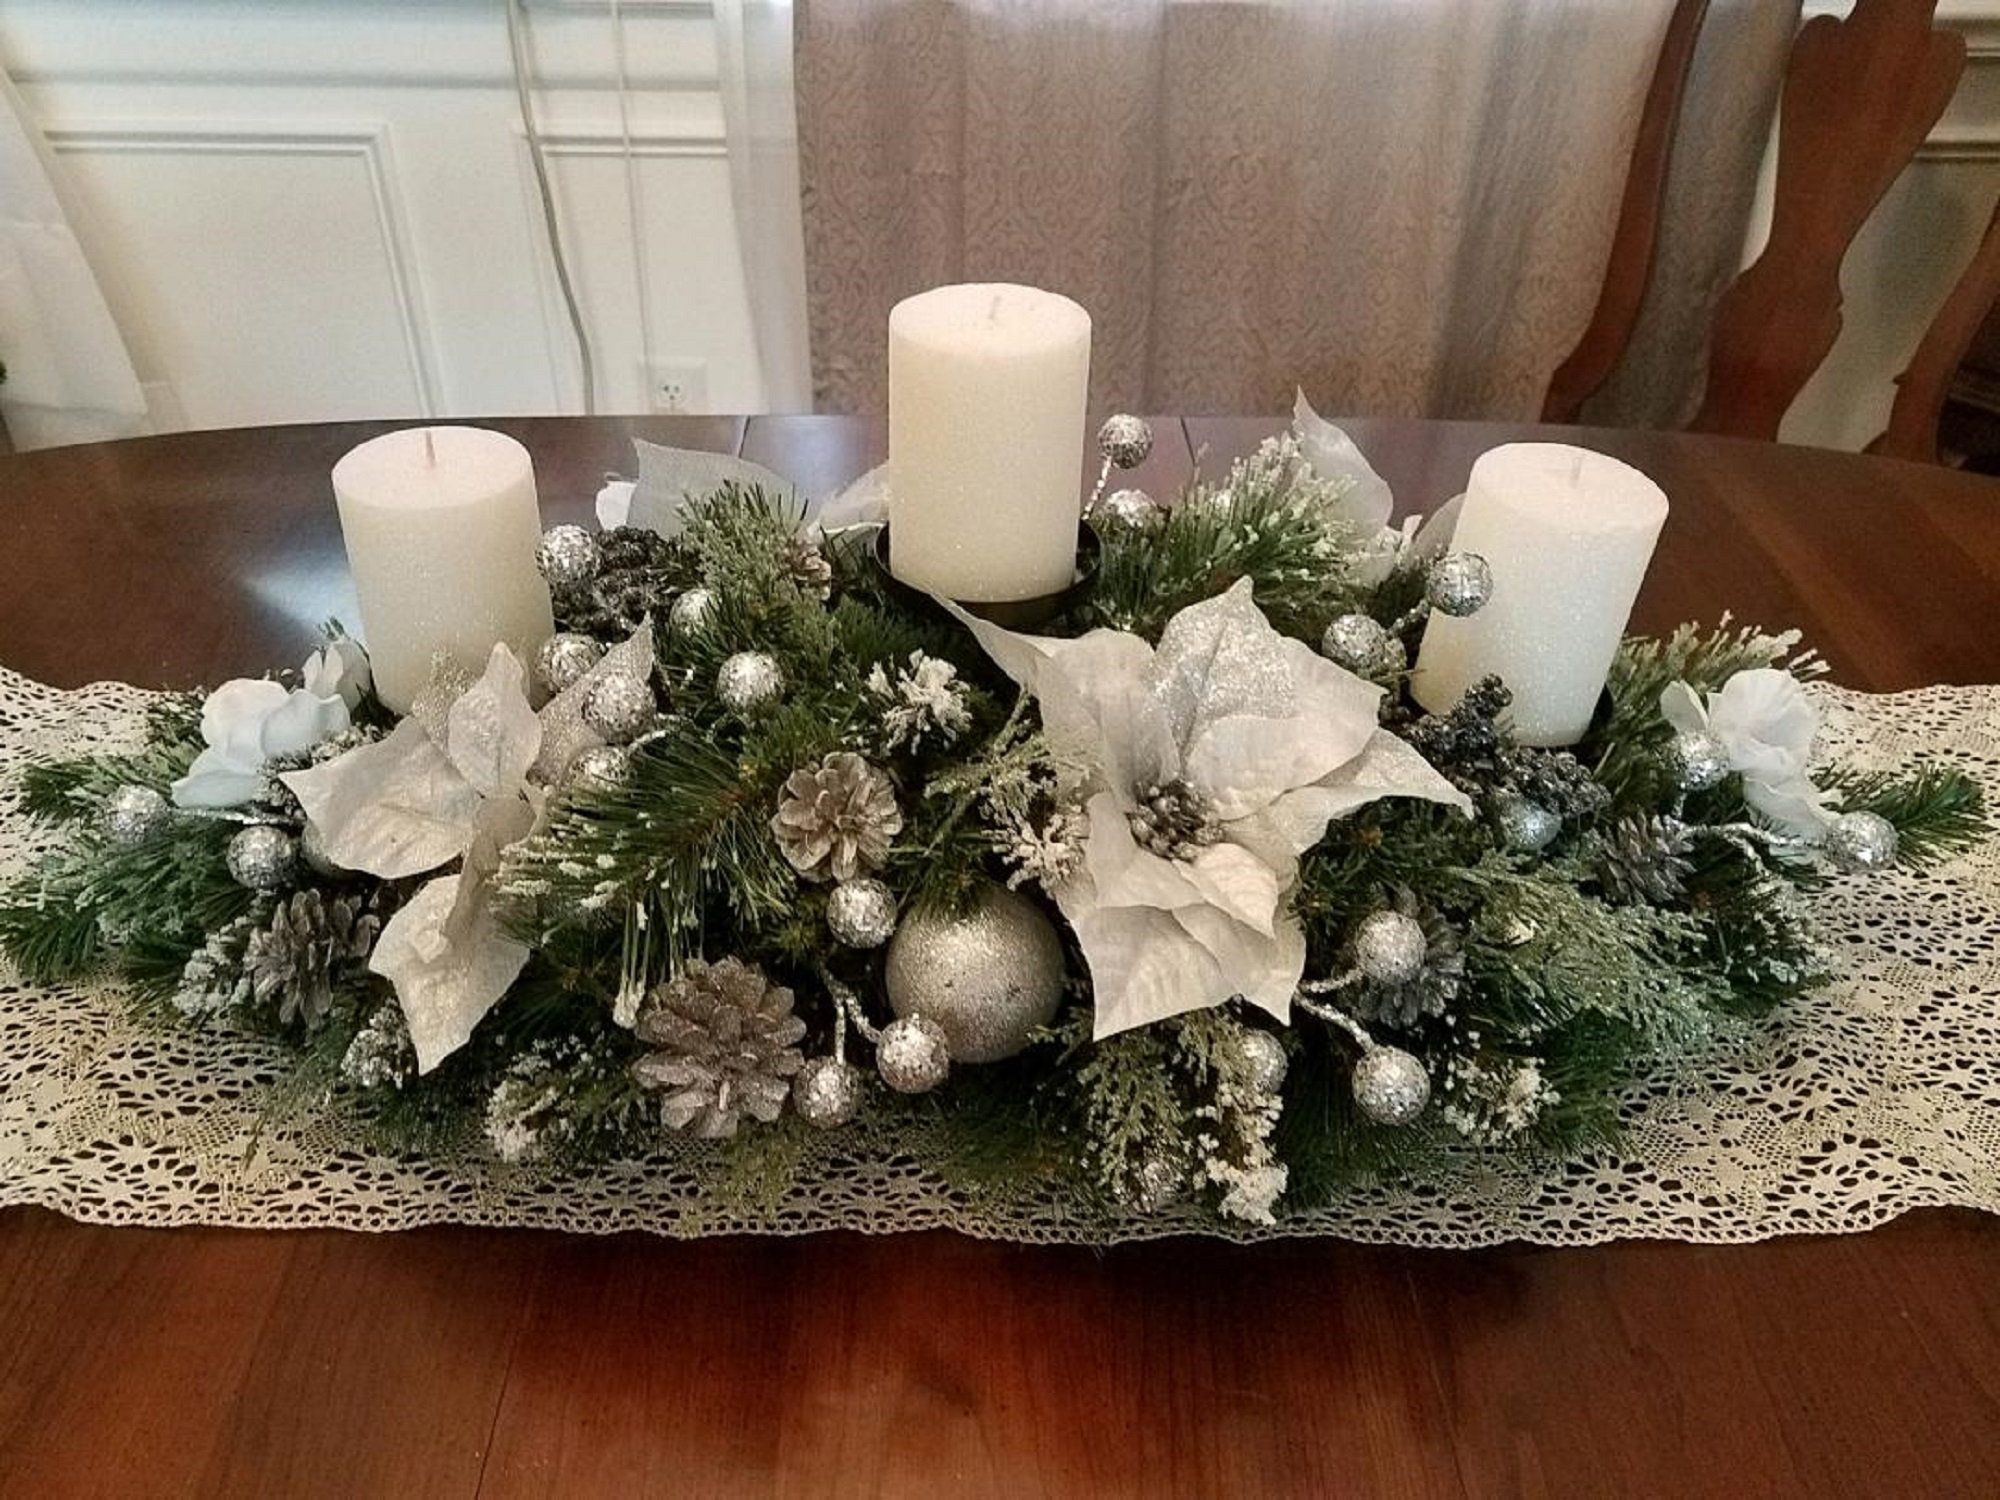 Christmas Centerpiece / XL Christmas Centerpiece/ Holiday Centerpiece / Mantle Decor / Table Decor / Silver Poinsettia Christmas Centerpiece